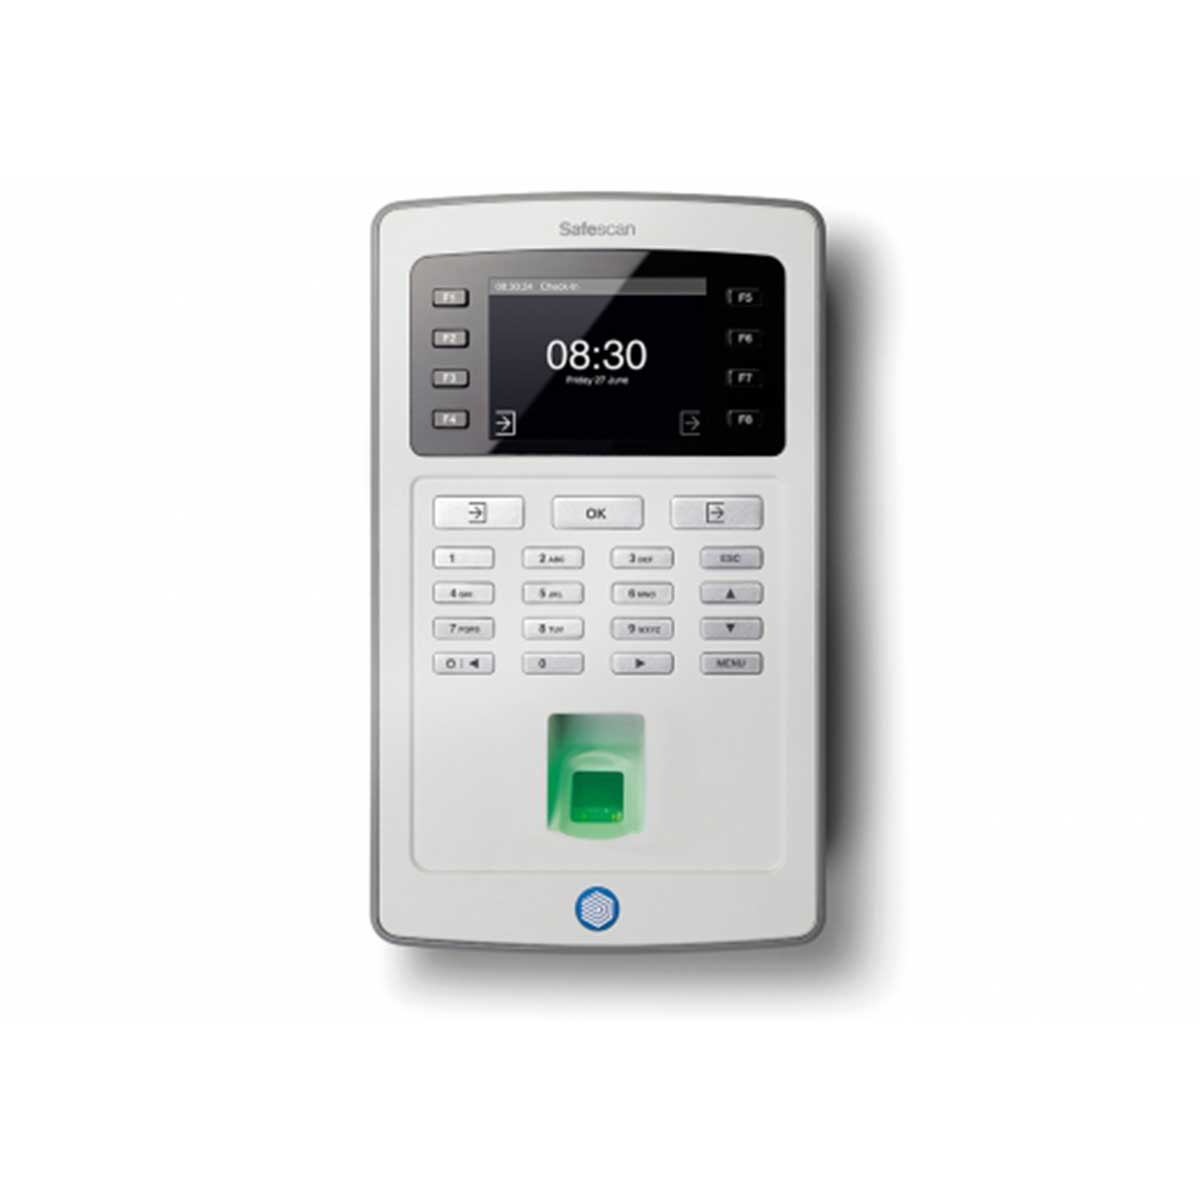 Safescan TA-8025 Time Attendance System and Software with Fingerprint Sensor and Wi-Fi - Grey